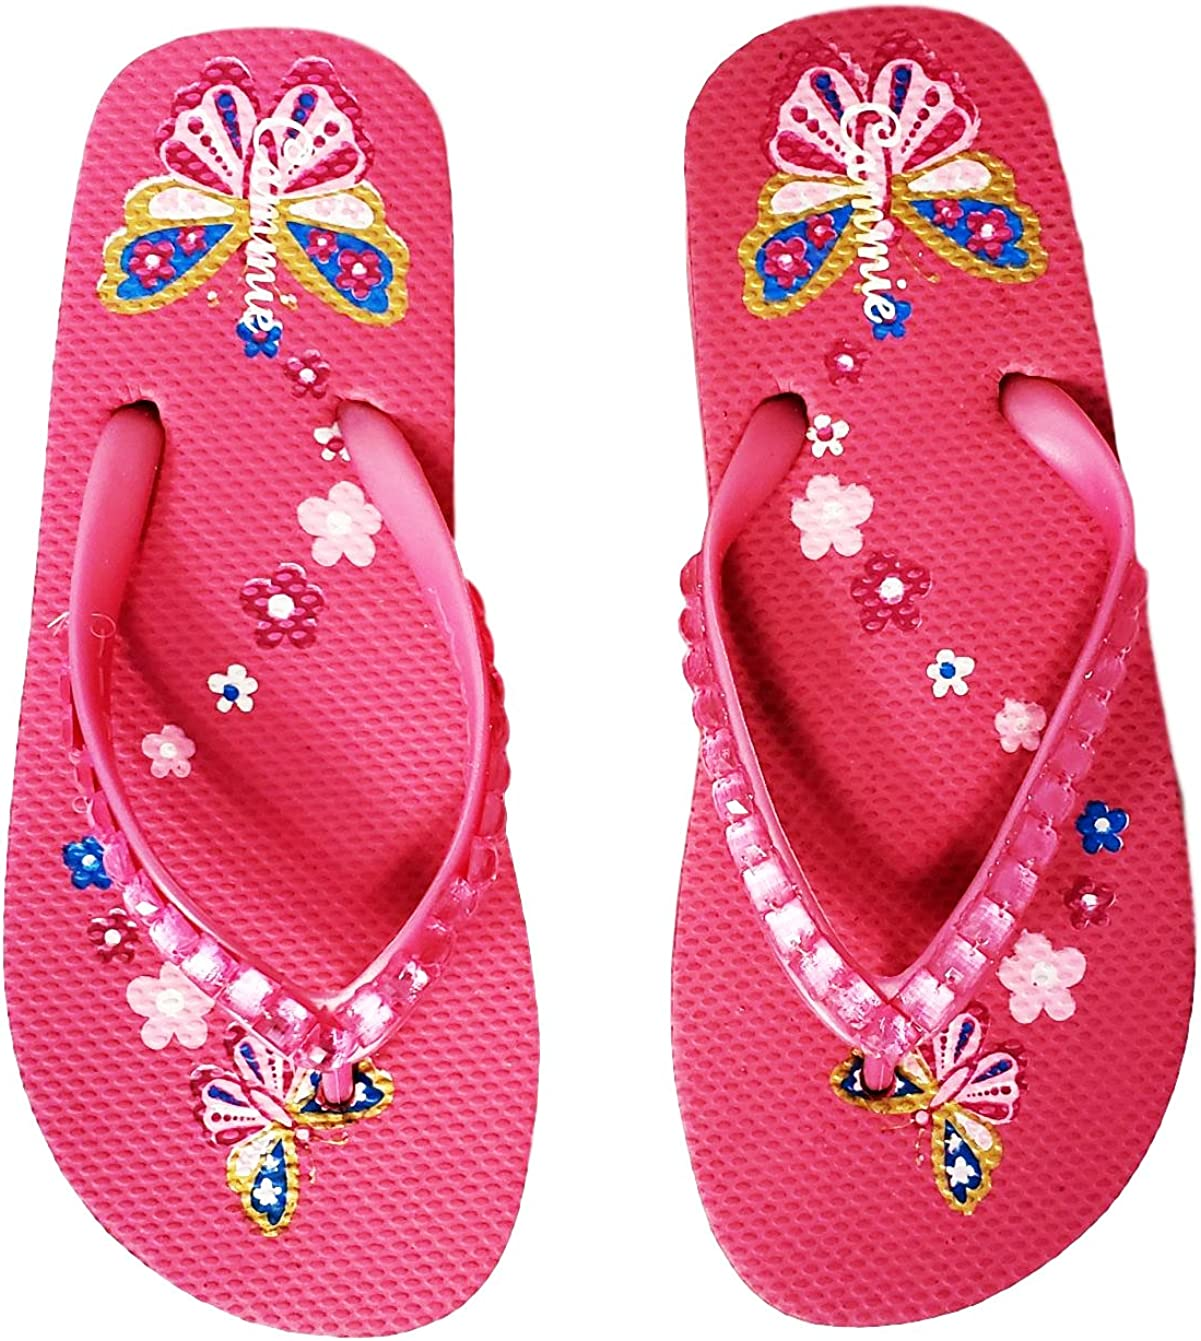 Cammie Girls Jewel Upper Butterfly and Flowers Retro Flip Flop Sandals